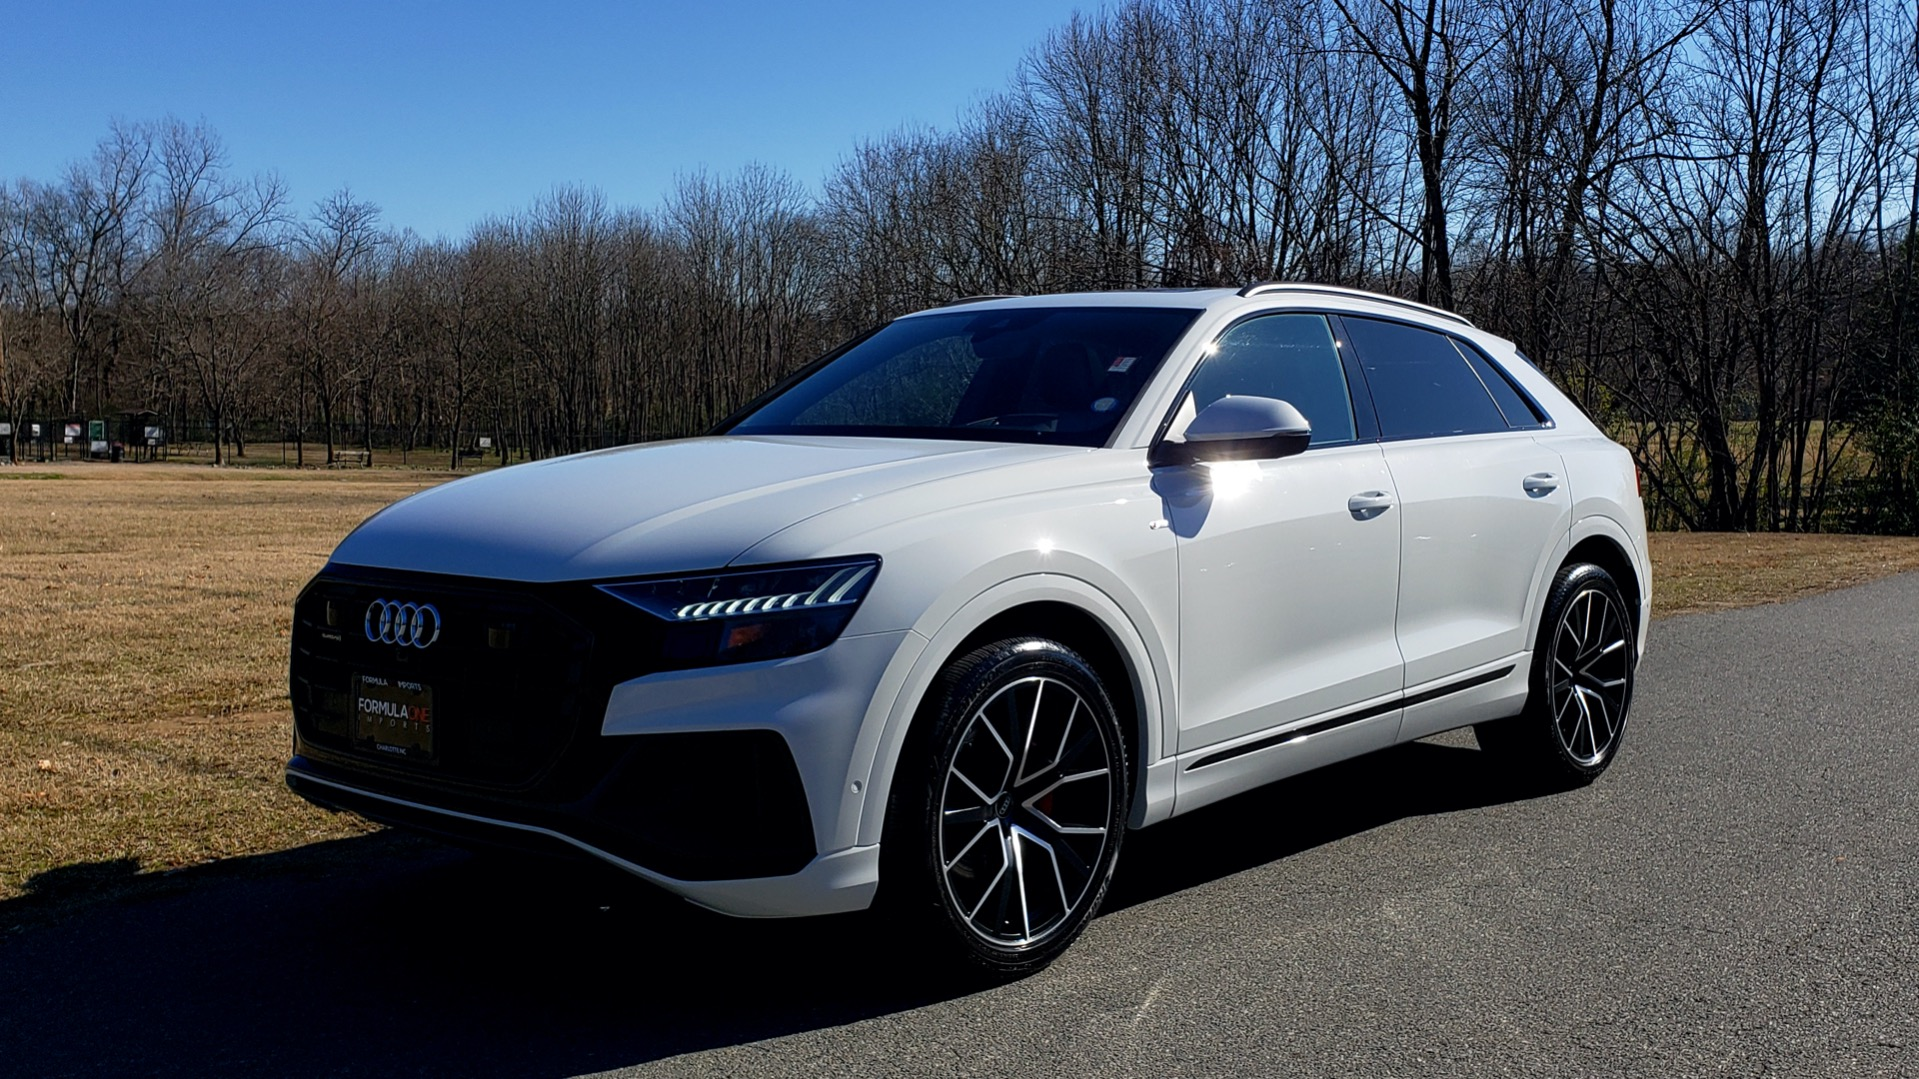 Used 2019 Audi Q8 PRESTIGE S-LINE / LUX PKG / ADAPT CHASSIS / YEAR ONE / CLD WTHR for sale Sold at Formula Imports in Charlotte NC 28227 3